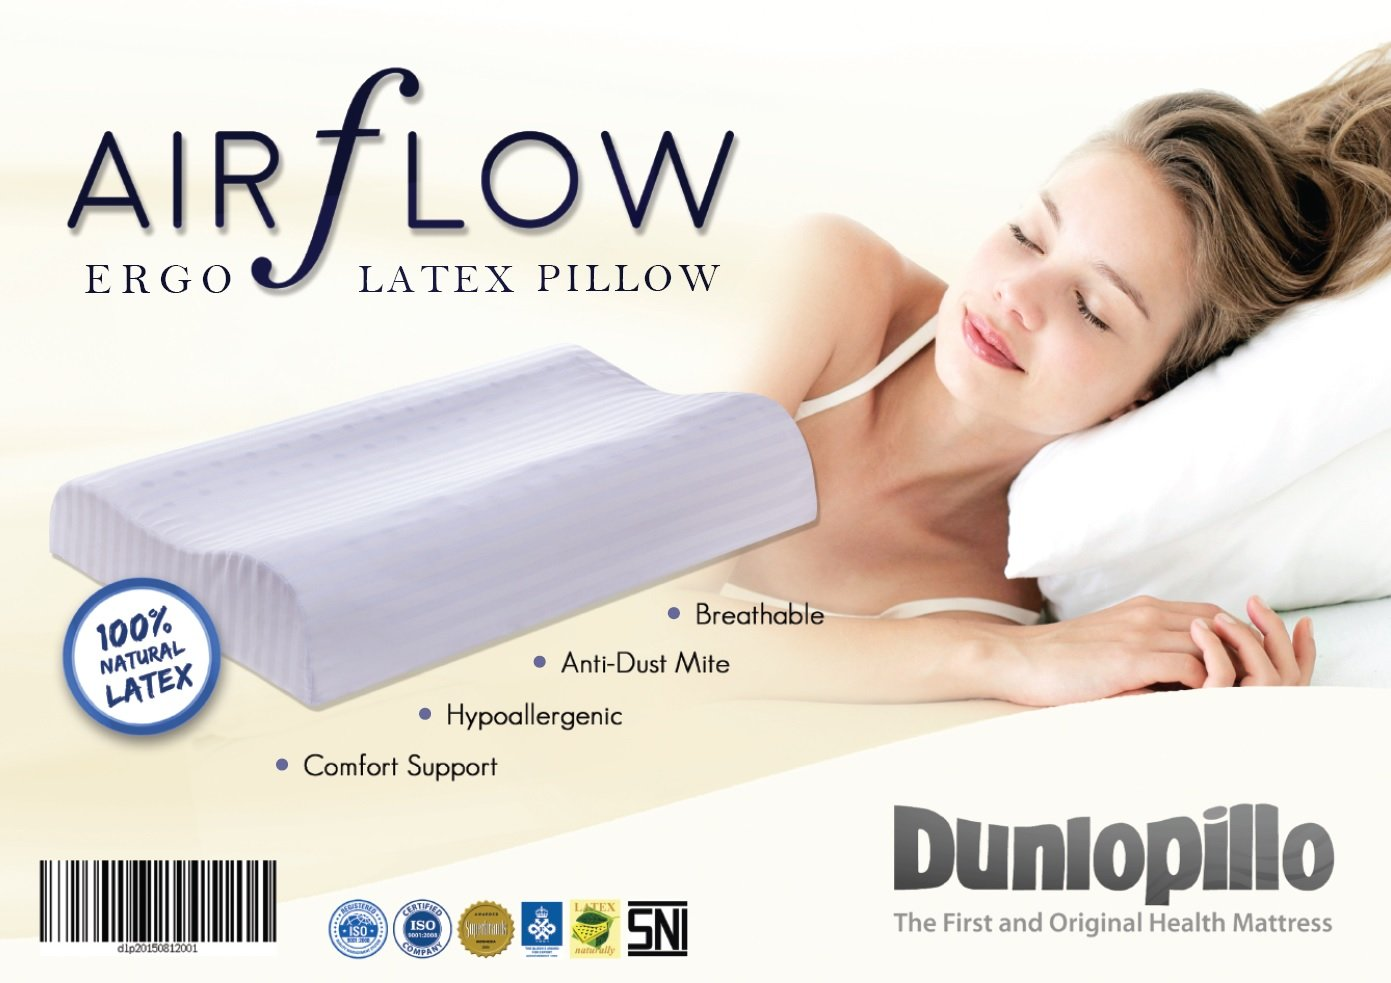 [Pillows for Sleeping] [Cooling Pillow, Natural Latex, Neck Pillow] [Excellent Neck Support, Anti-Allergen & Odorless. Stays in shape, no fluffing]. Ergonomic Design